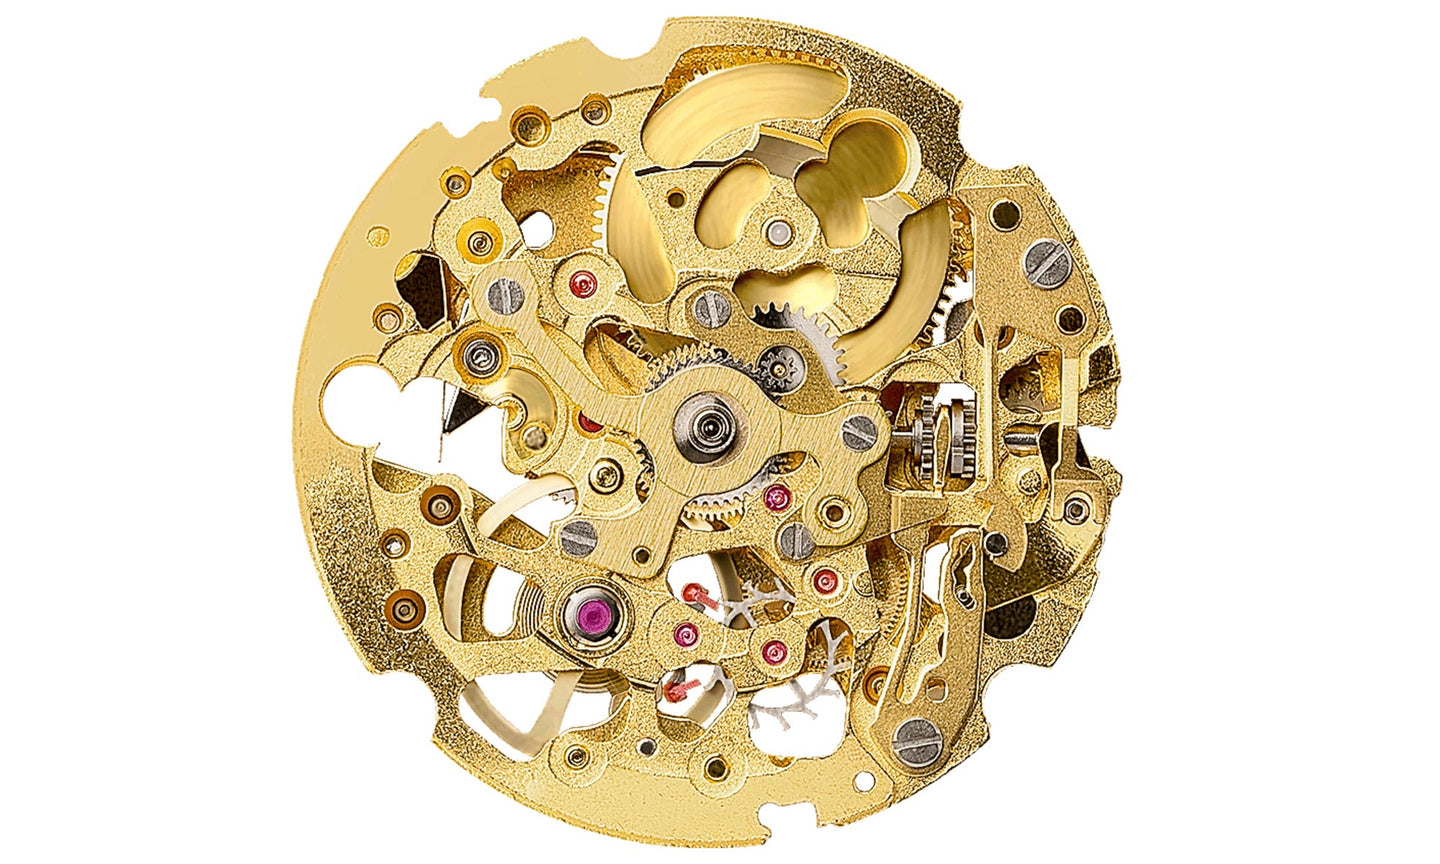 Miyota 8N24 Gold Movement